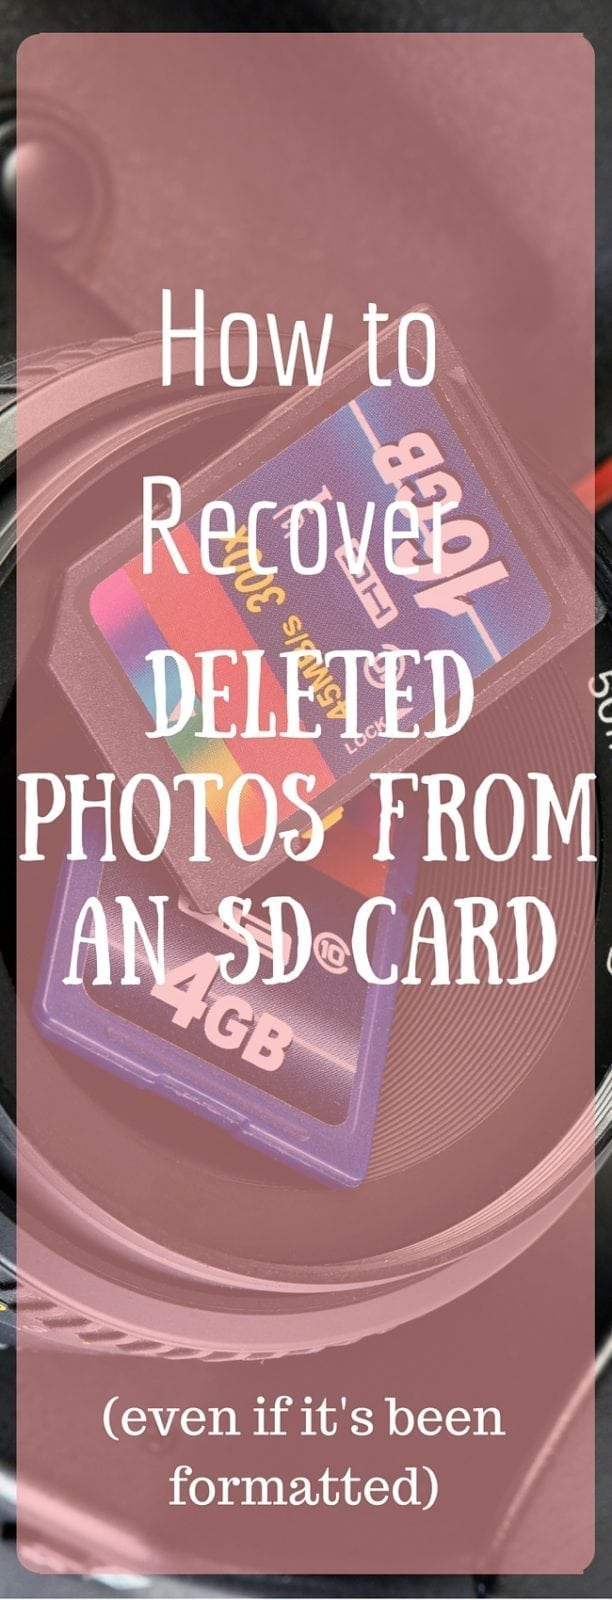 Did you accidentally delete photos from your SD card? Here is how you can recover them for free (even if it's been formatted!)